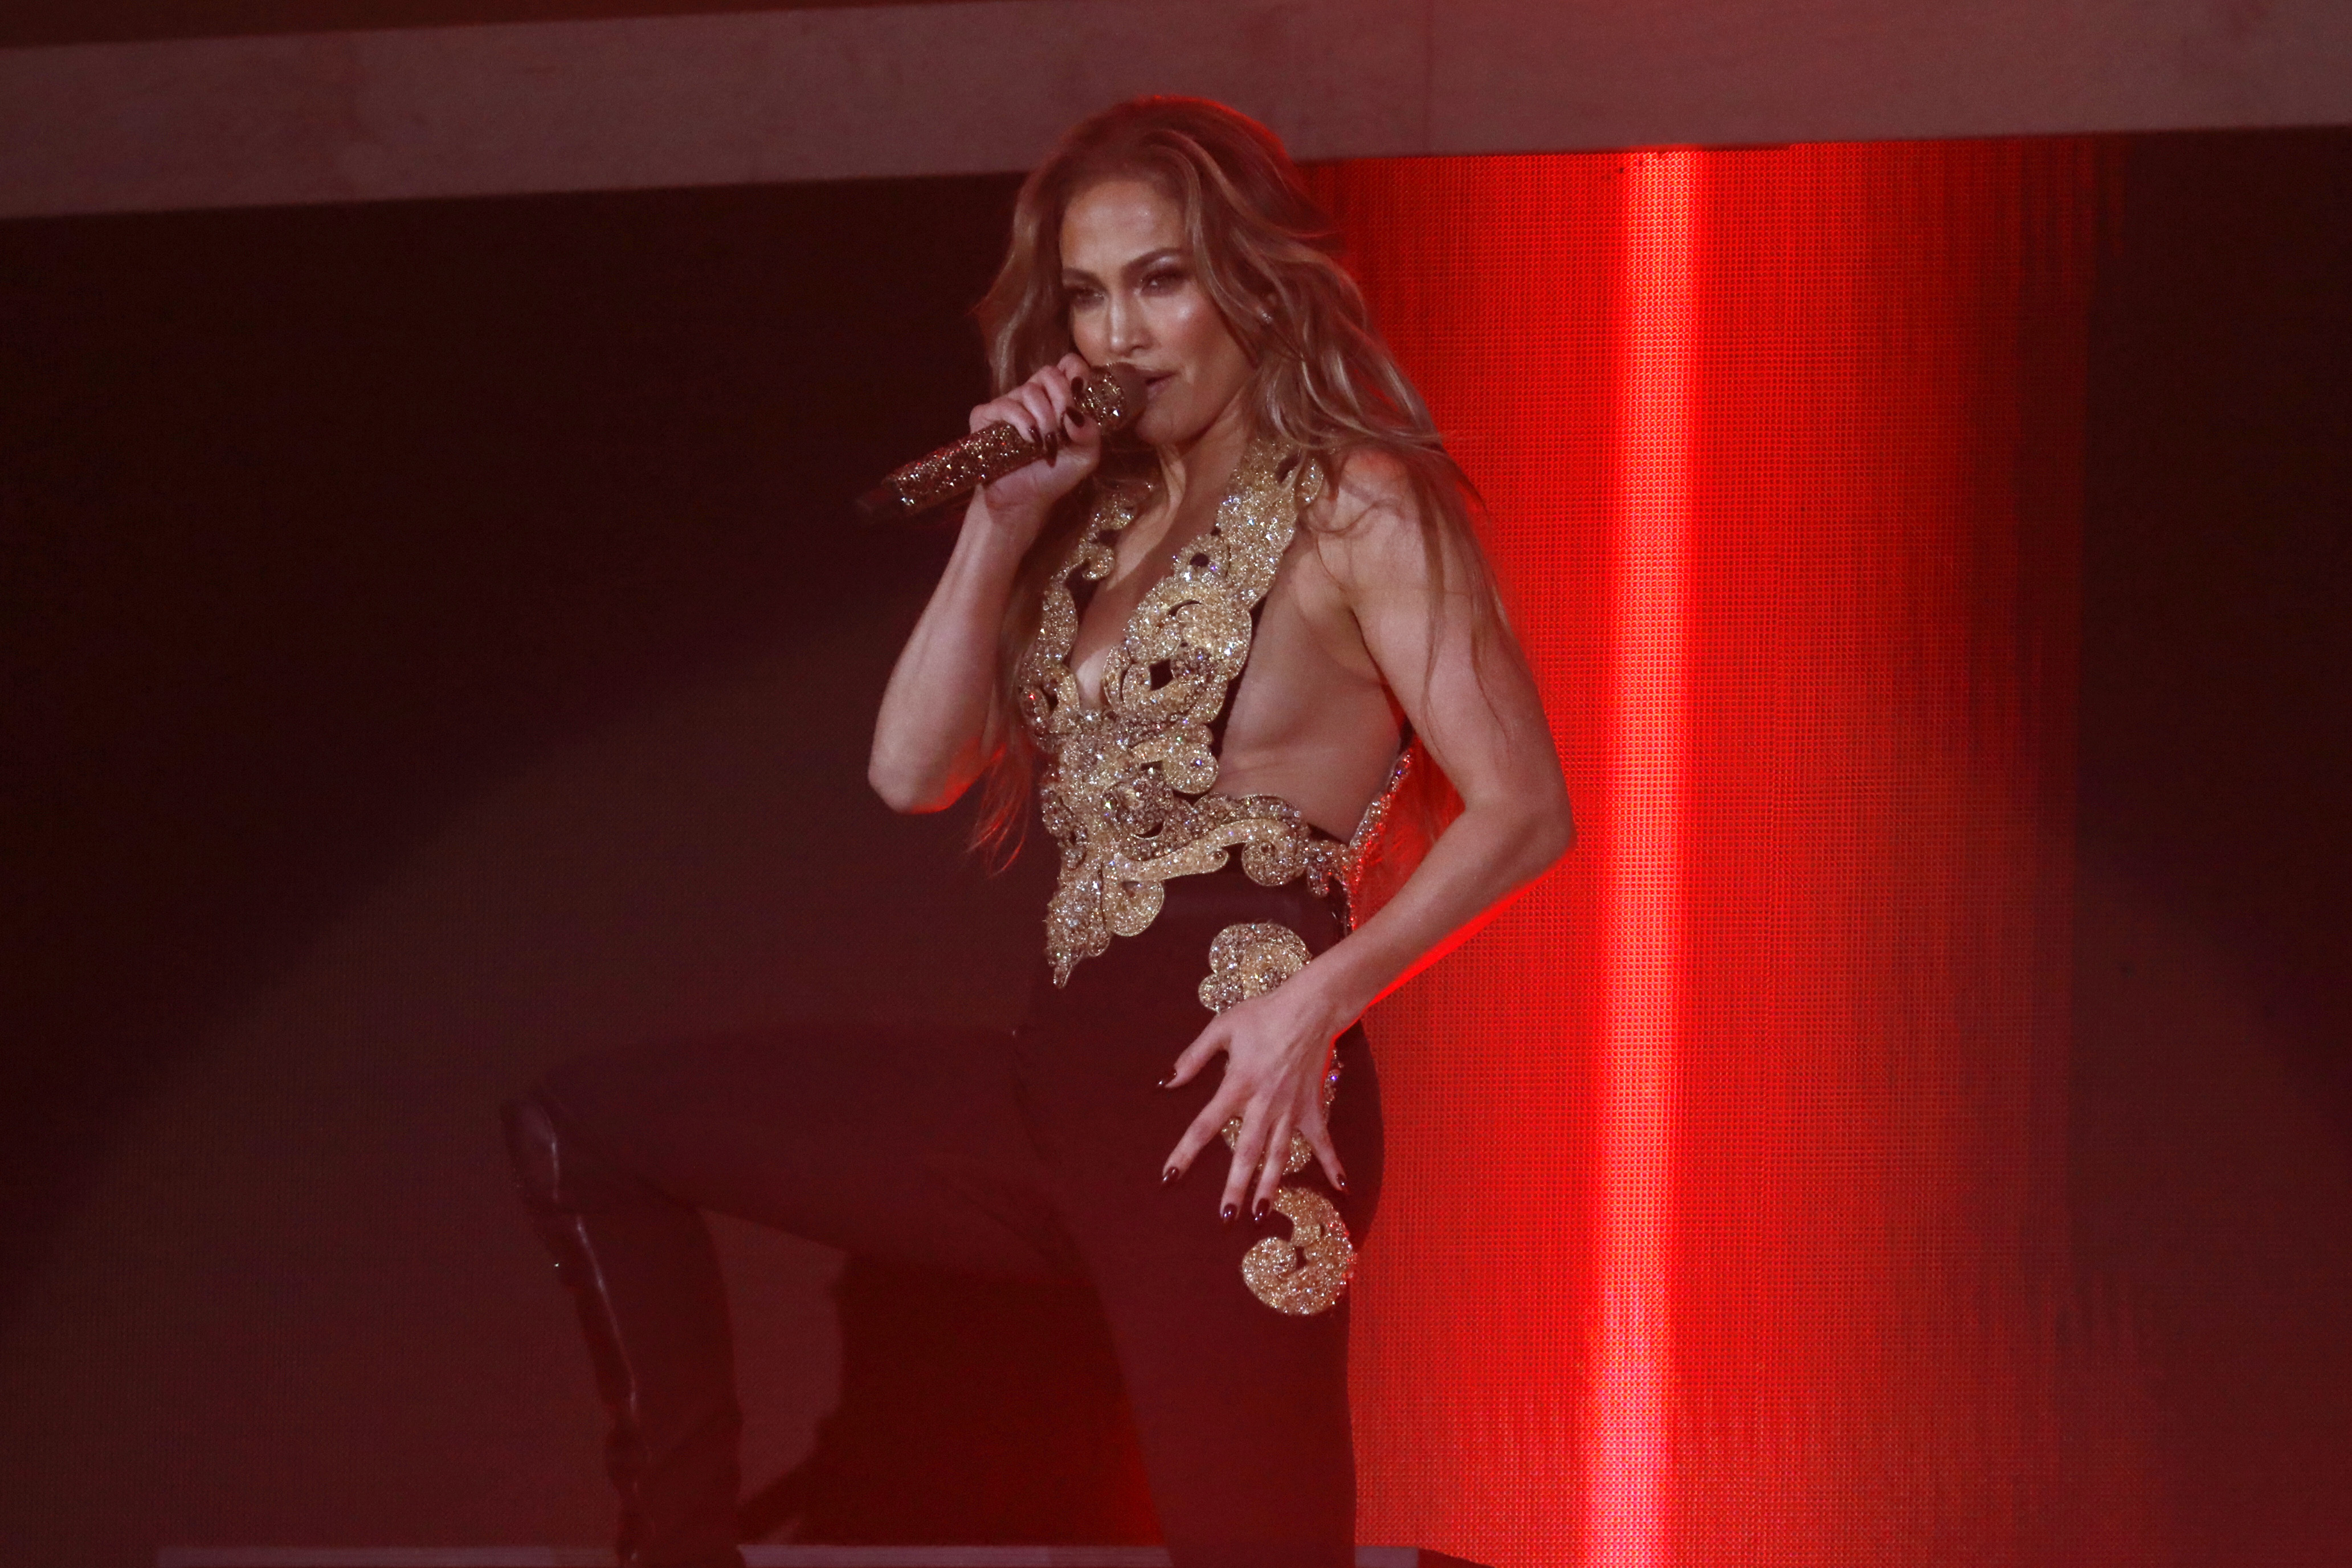 NEW YORK, NEW YORK - SEPTEMBER 25: Jennifer Lopez performs onstage during Global Citizen Live, New York on September 25, 2021 in New York City. (Photo by John Lamparski/Getty Images,)